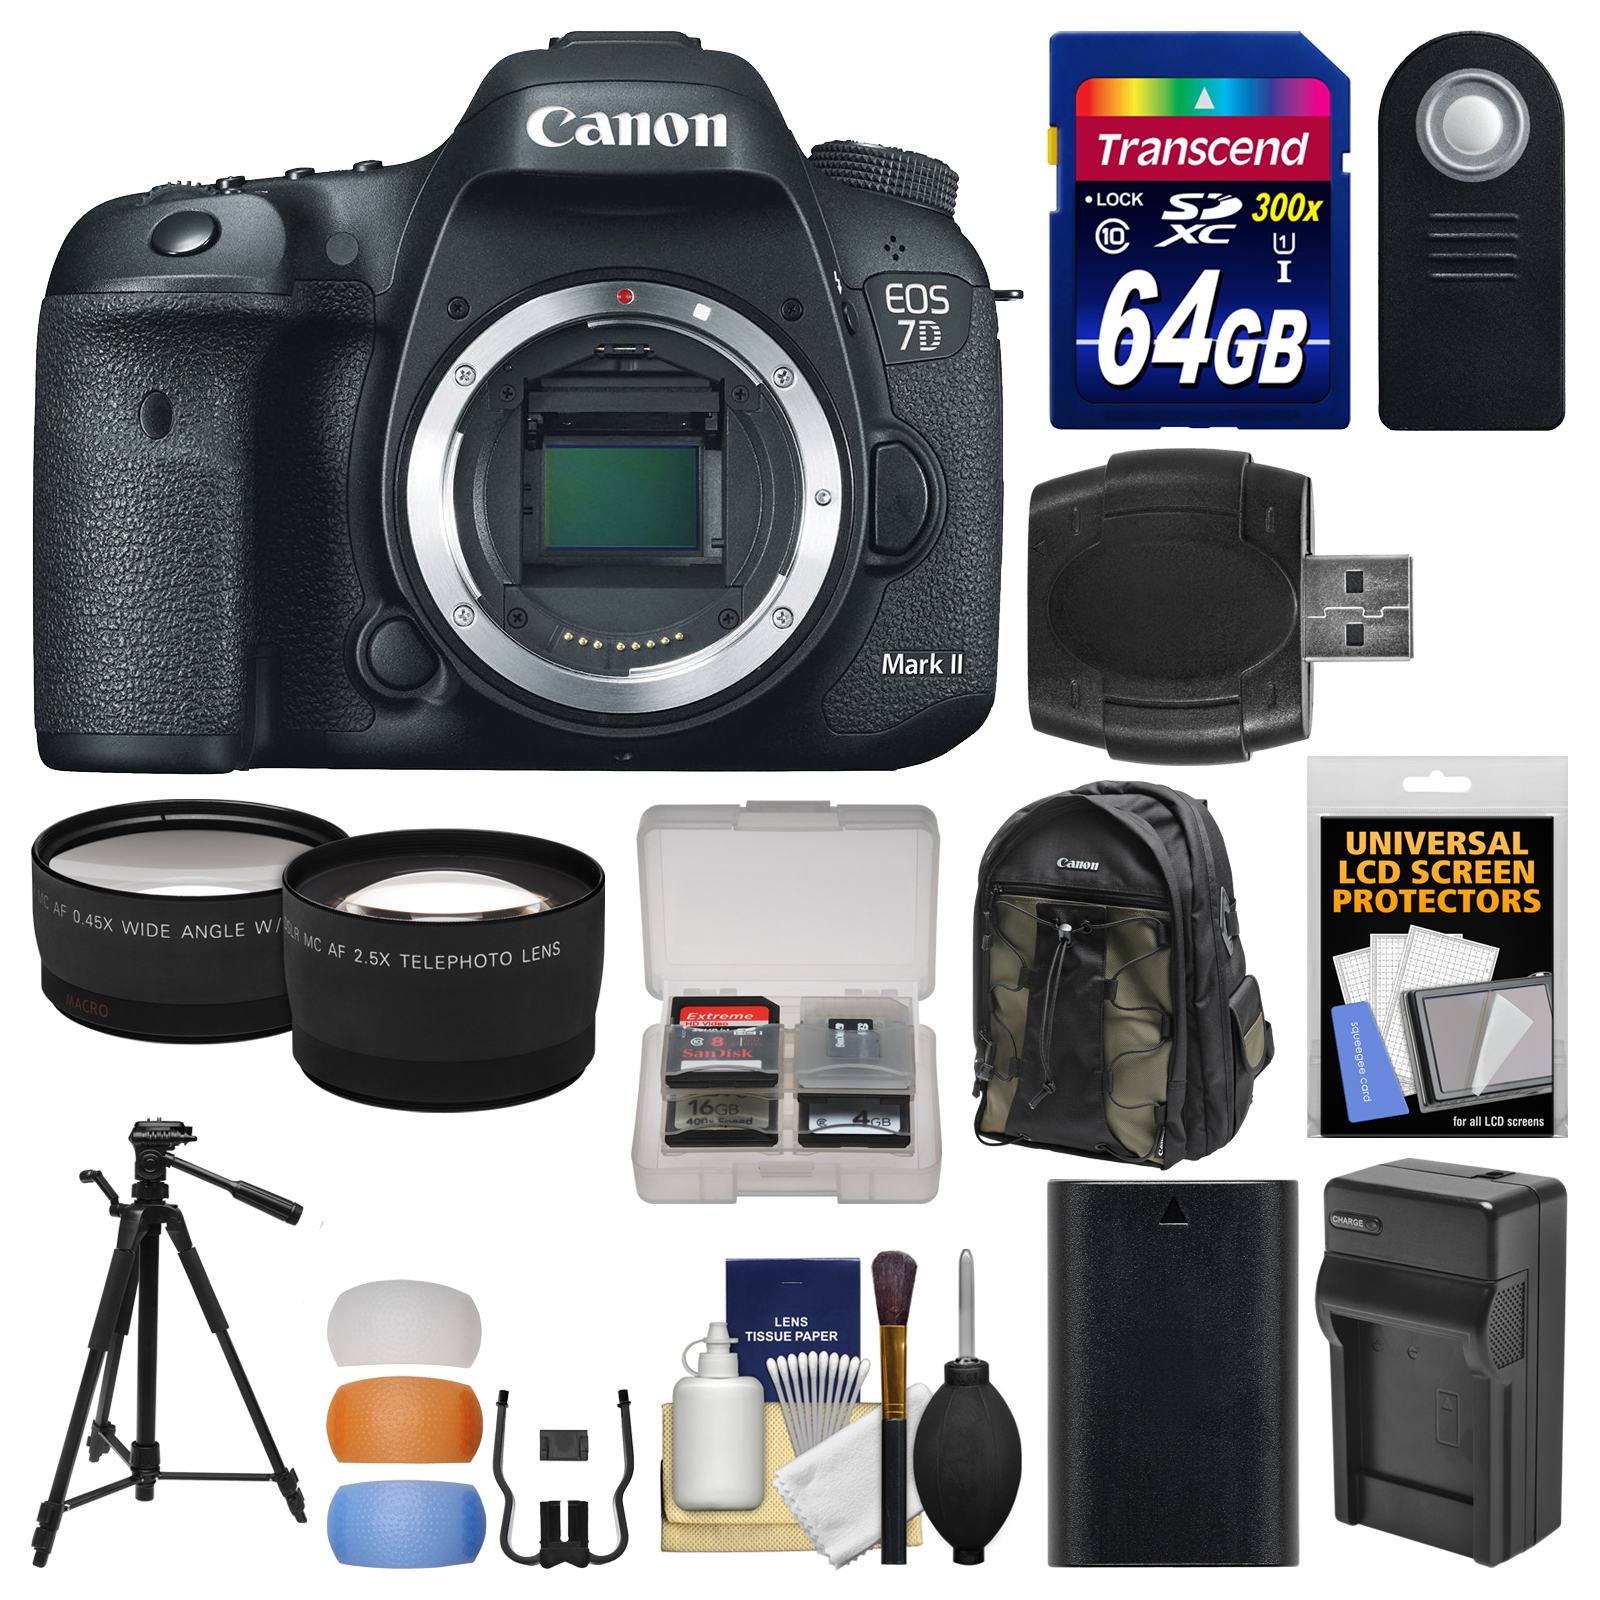 Canon EOS 7D Mark II GPS Digital SLR Camera Body with 64GB Card + Backpack + Battery Charger + Tripod + Remote + Tele... by Canon